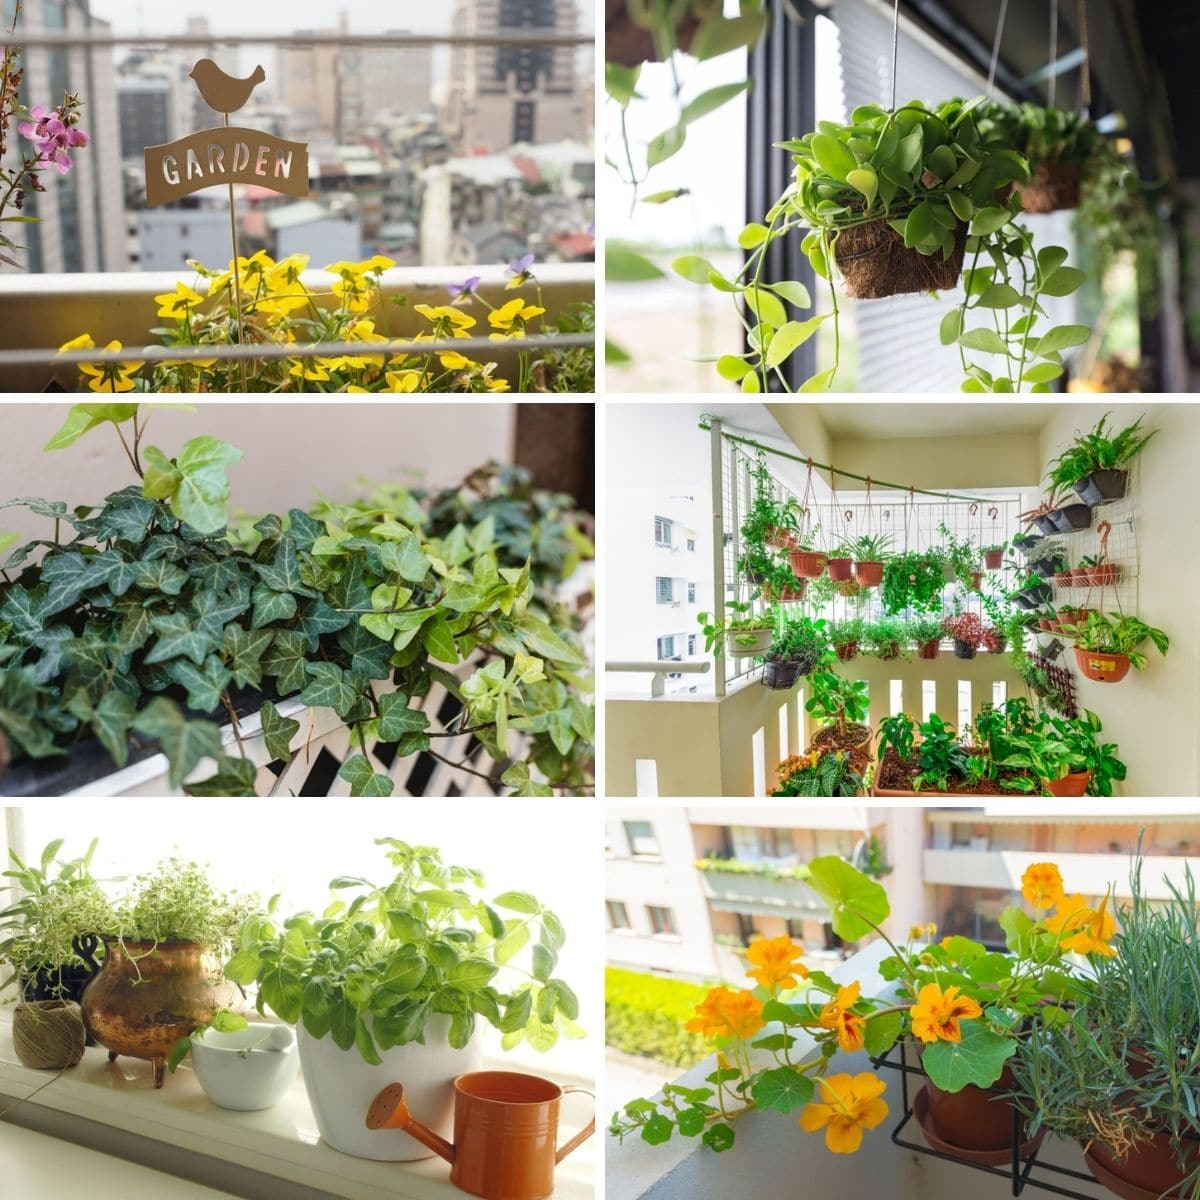 Tips for Urban Gardening